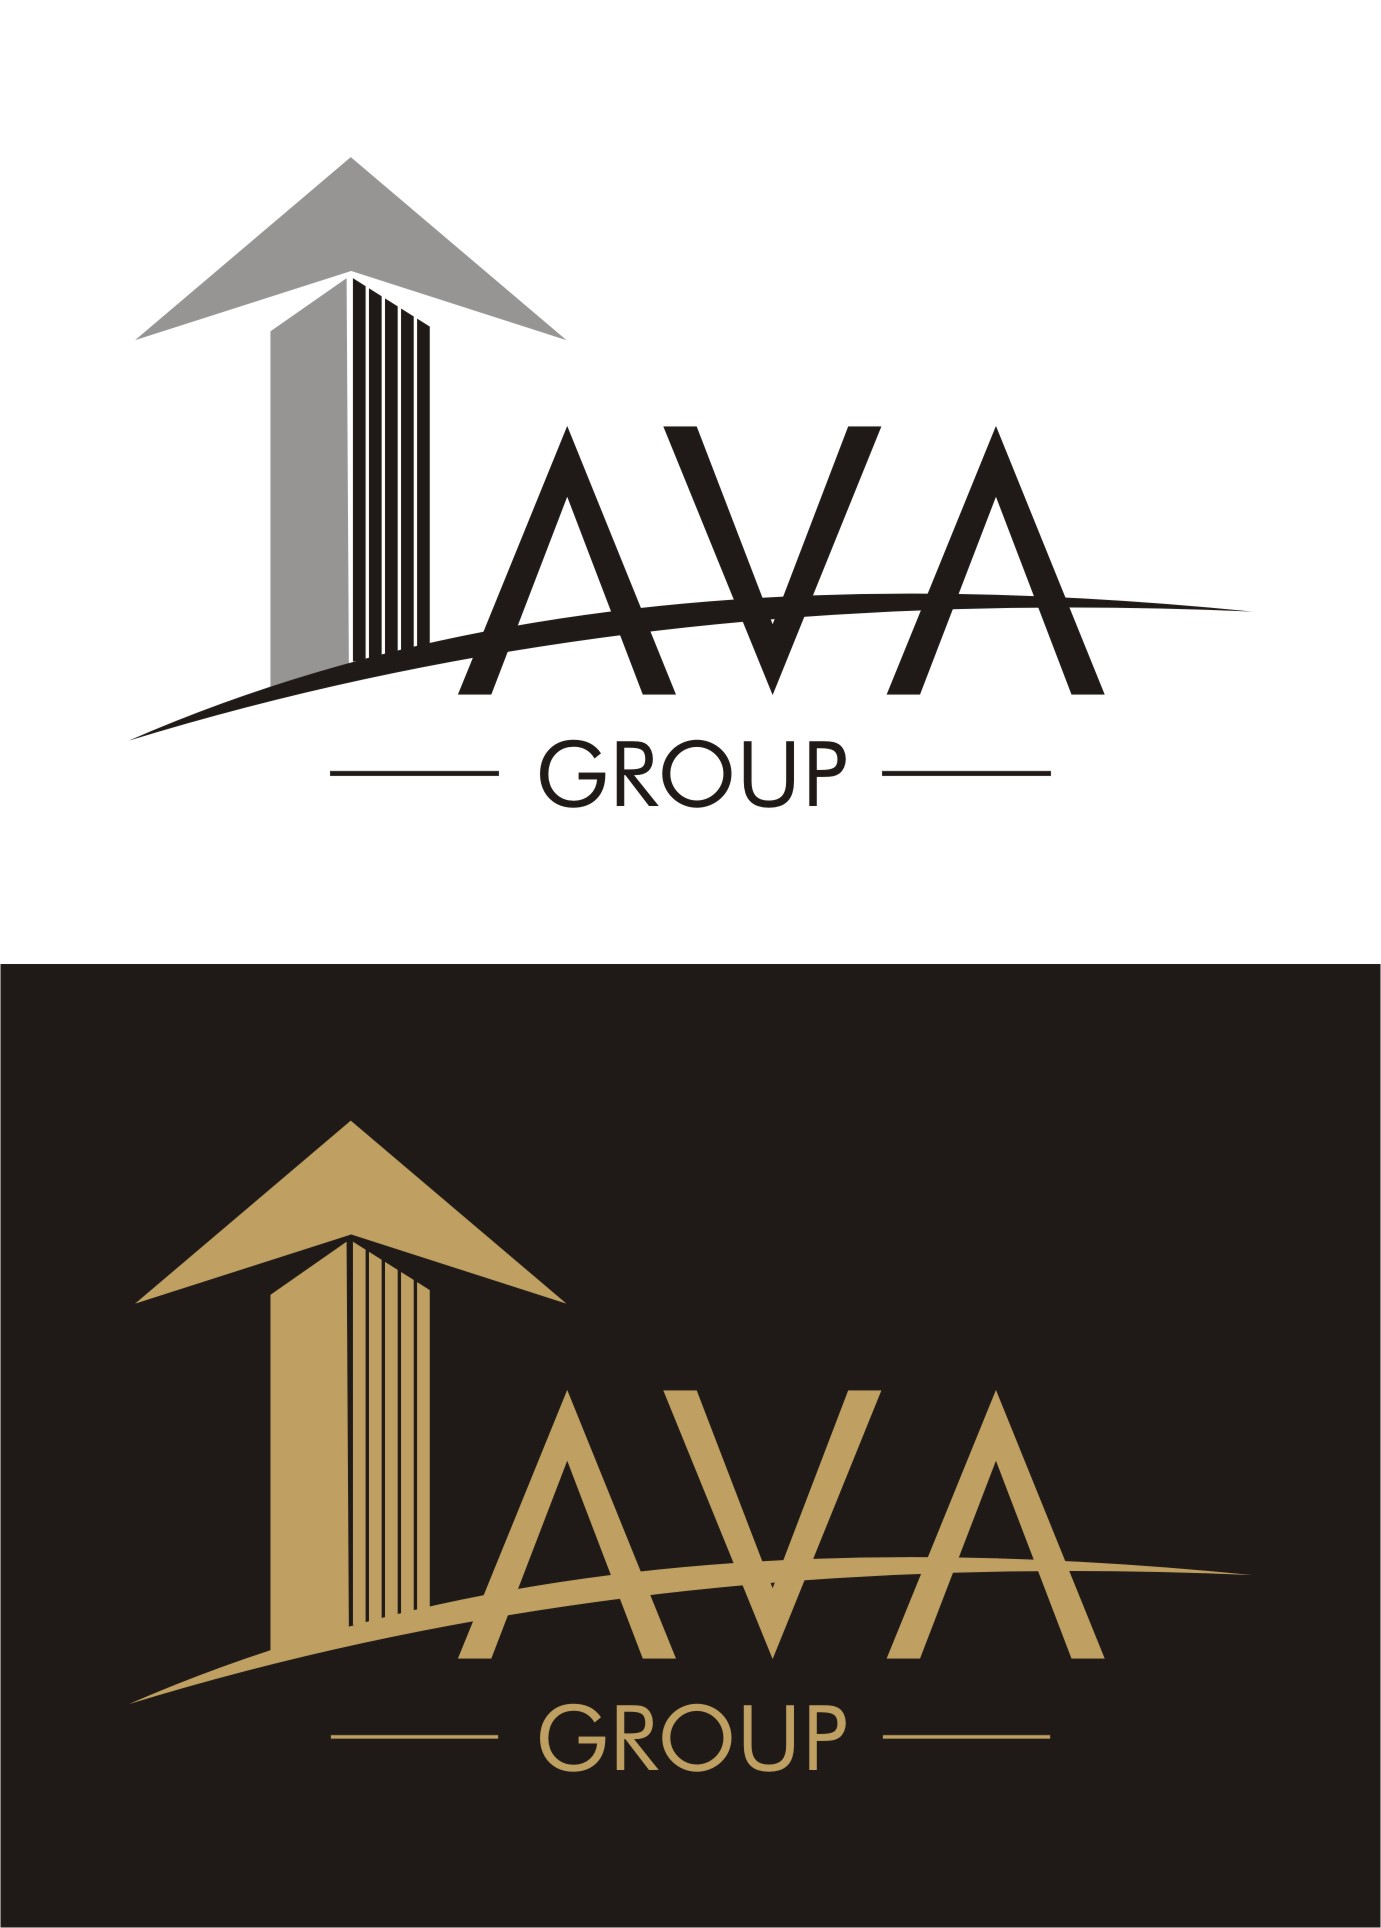 Logo Design by Spider Graphics - Entry No. 334 in the Logo Design Contest Creative Logo Design for Tava Group.